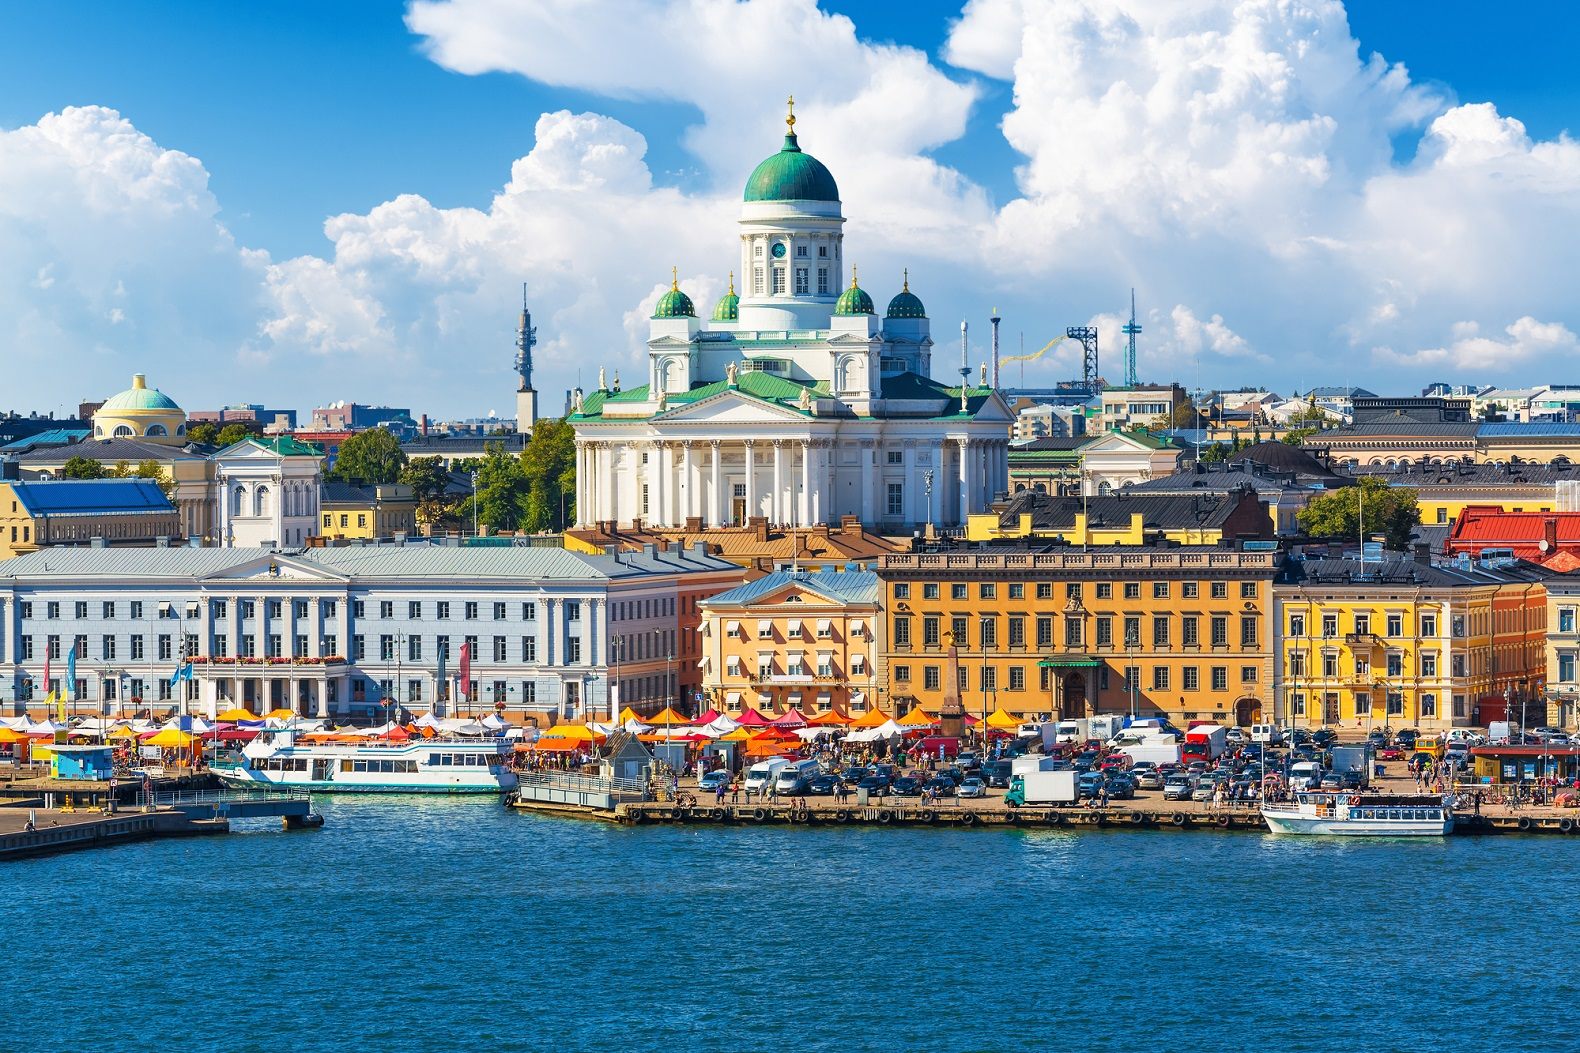 Finland's two-year universal basic income experiment is coming to an end